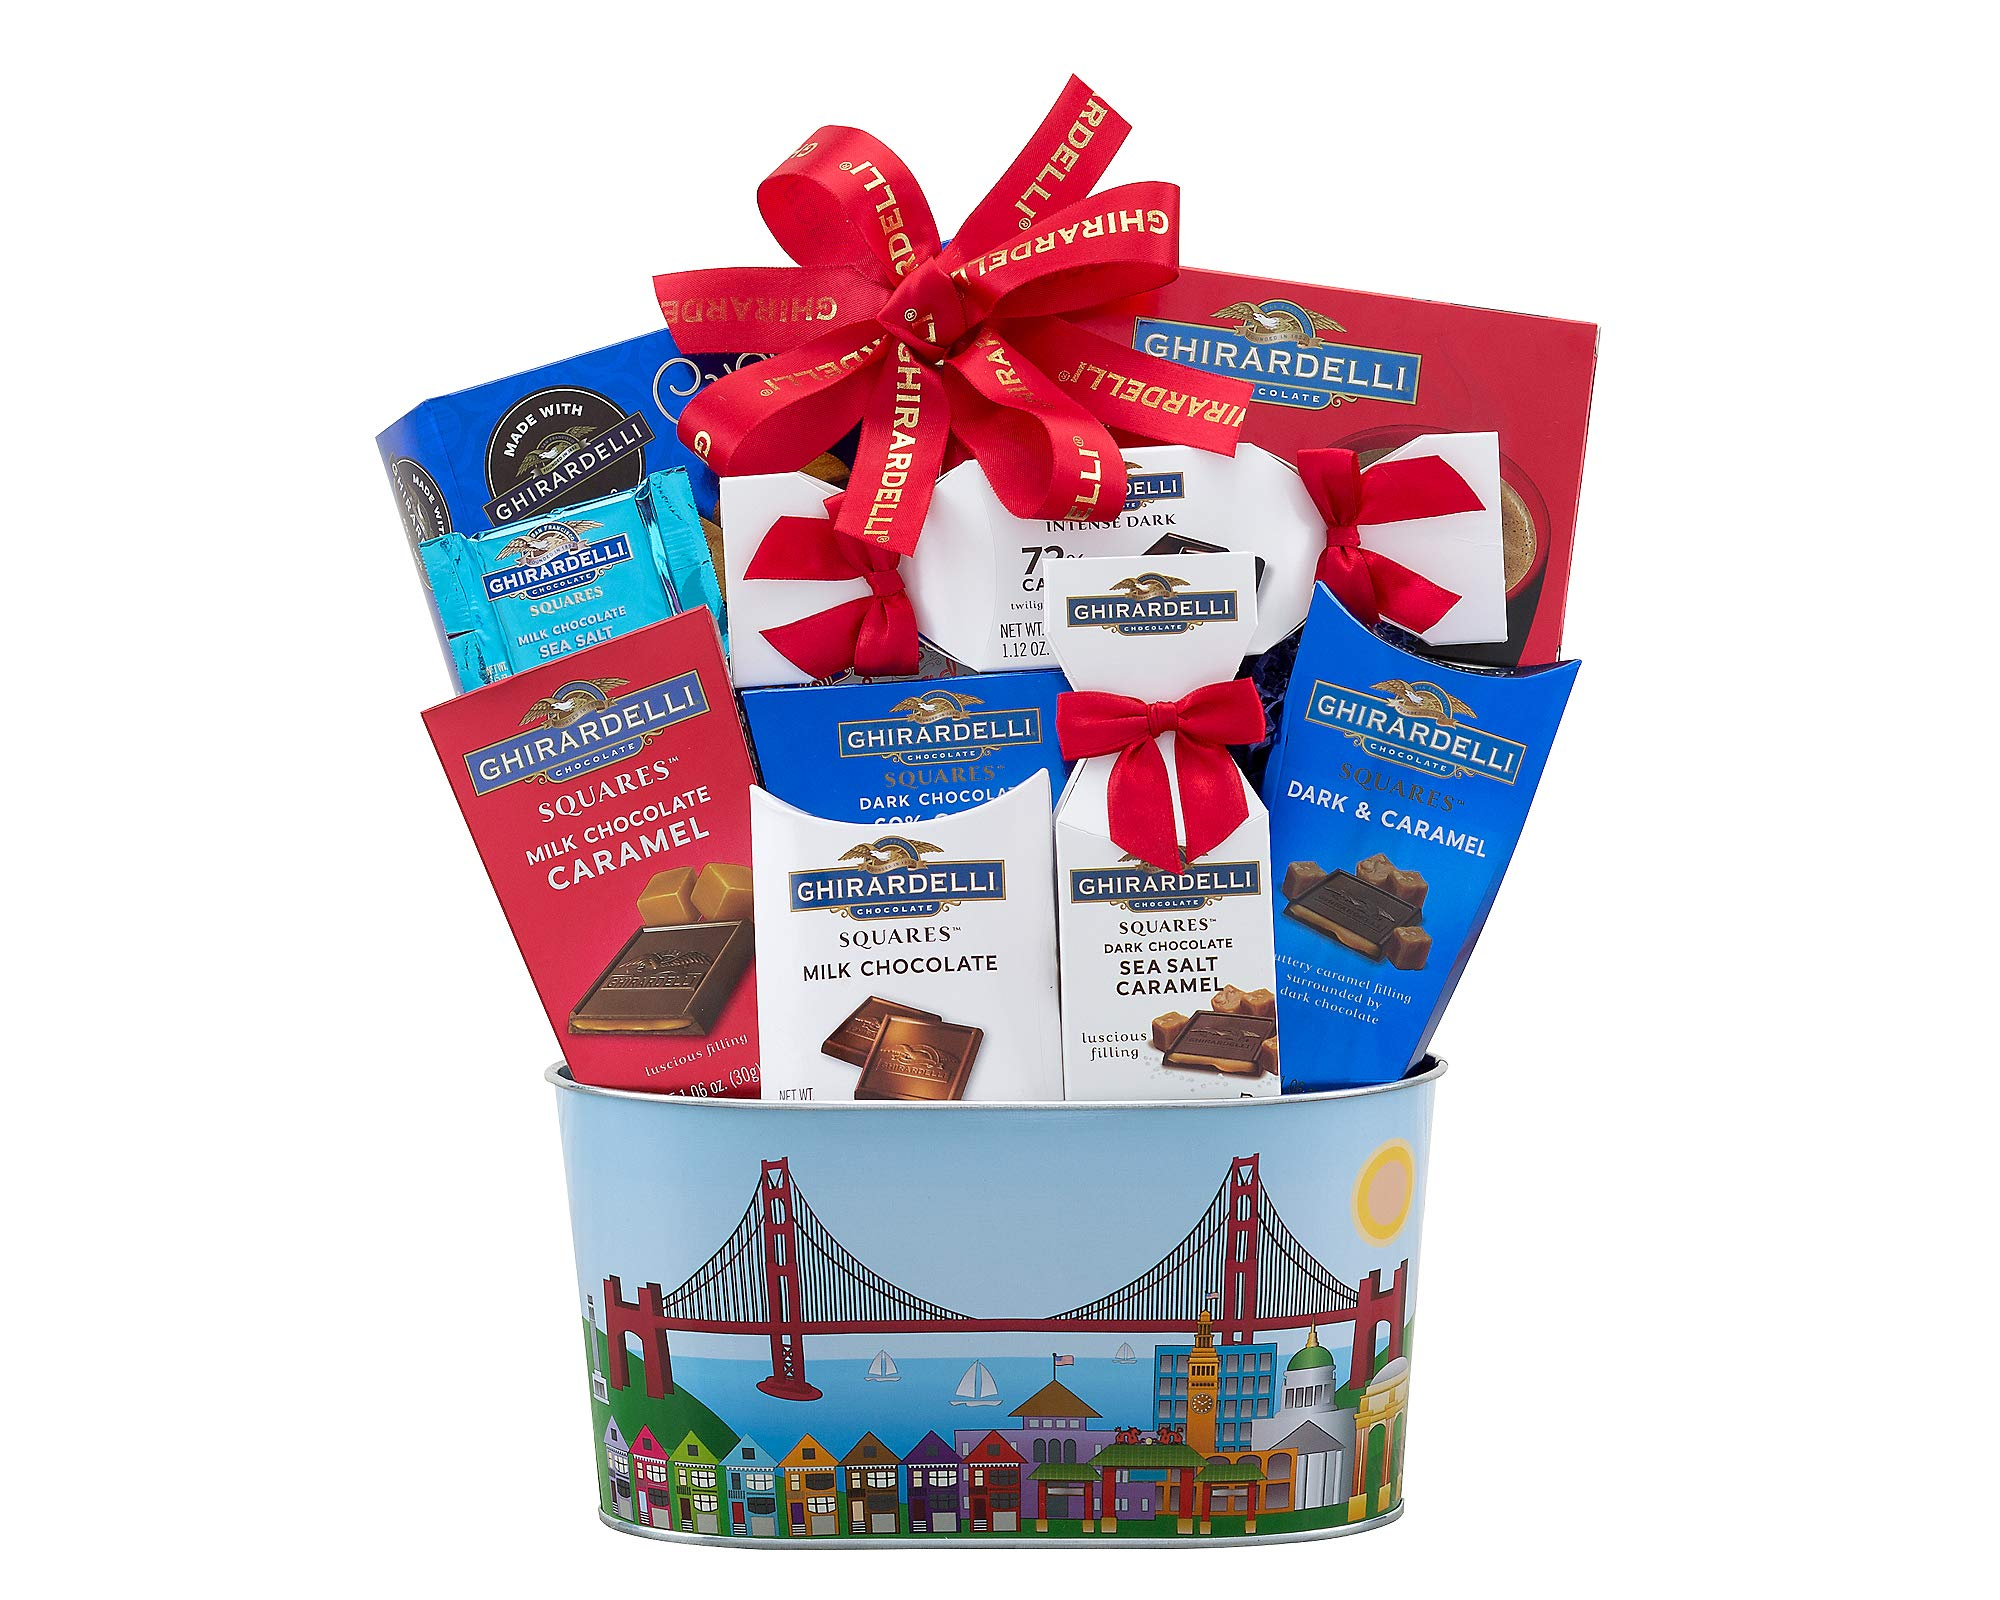 Wine Country Gift Baskets Christmas Ghirardelli Milk & Dark Chocolate Gift Basket, Holiday Gift Basket, Christmas Gift Basket, Family Gift Basket, Corporate Gift Basket, Birthday Gift by Wine Country Gift Baskets